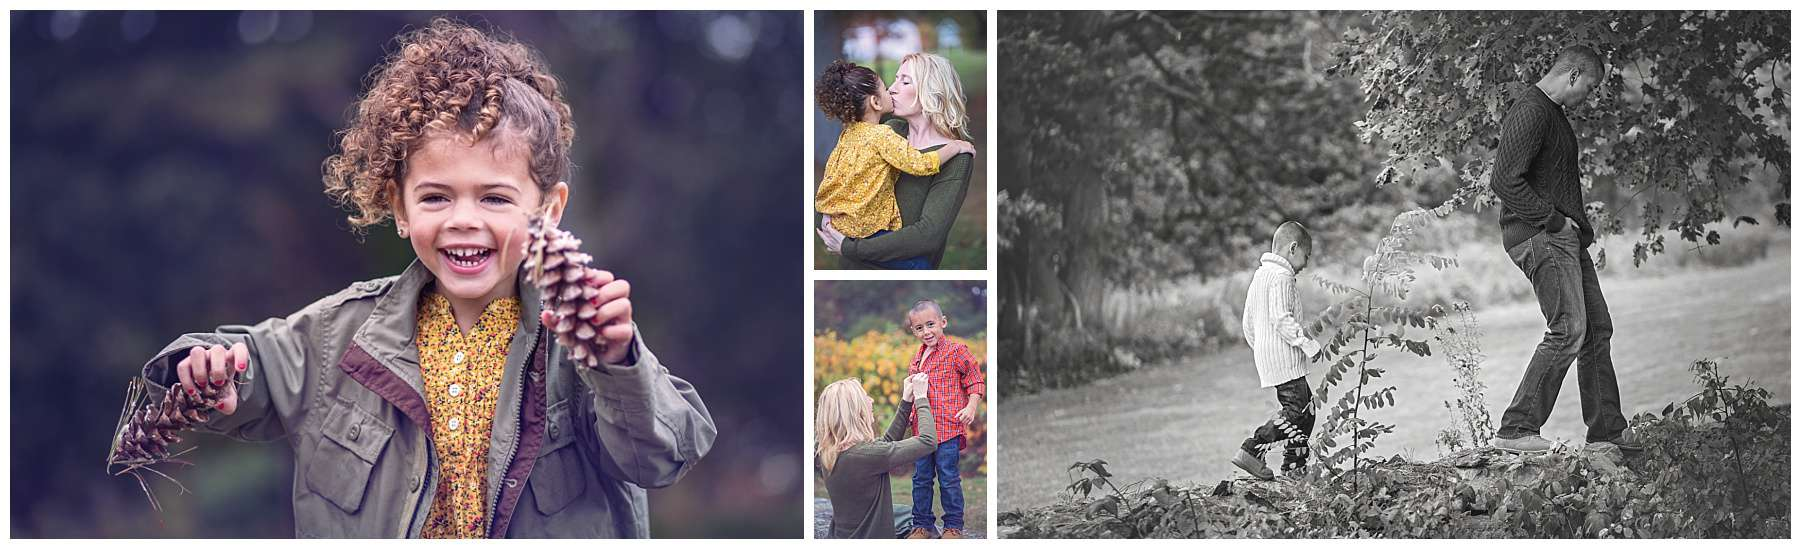 family photos, family photography, candid photography, lifestyle photography, families, kids